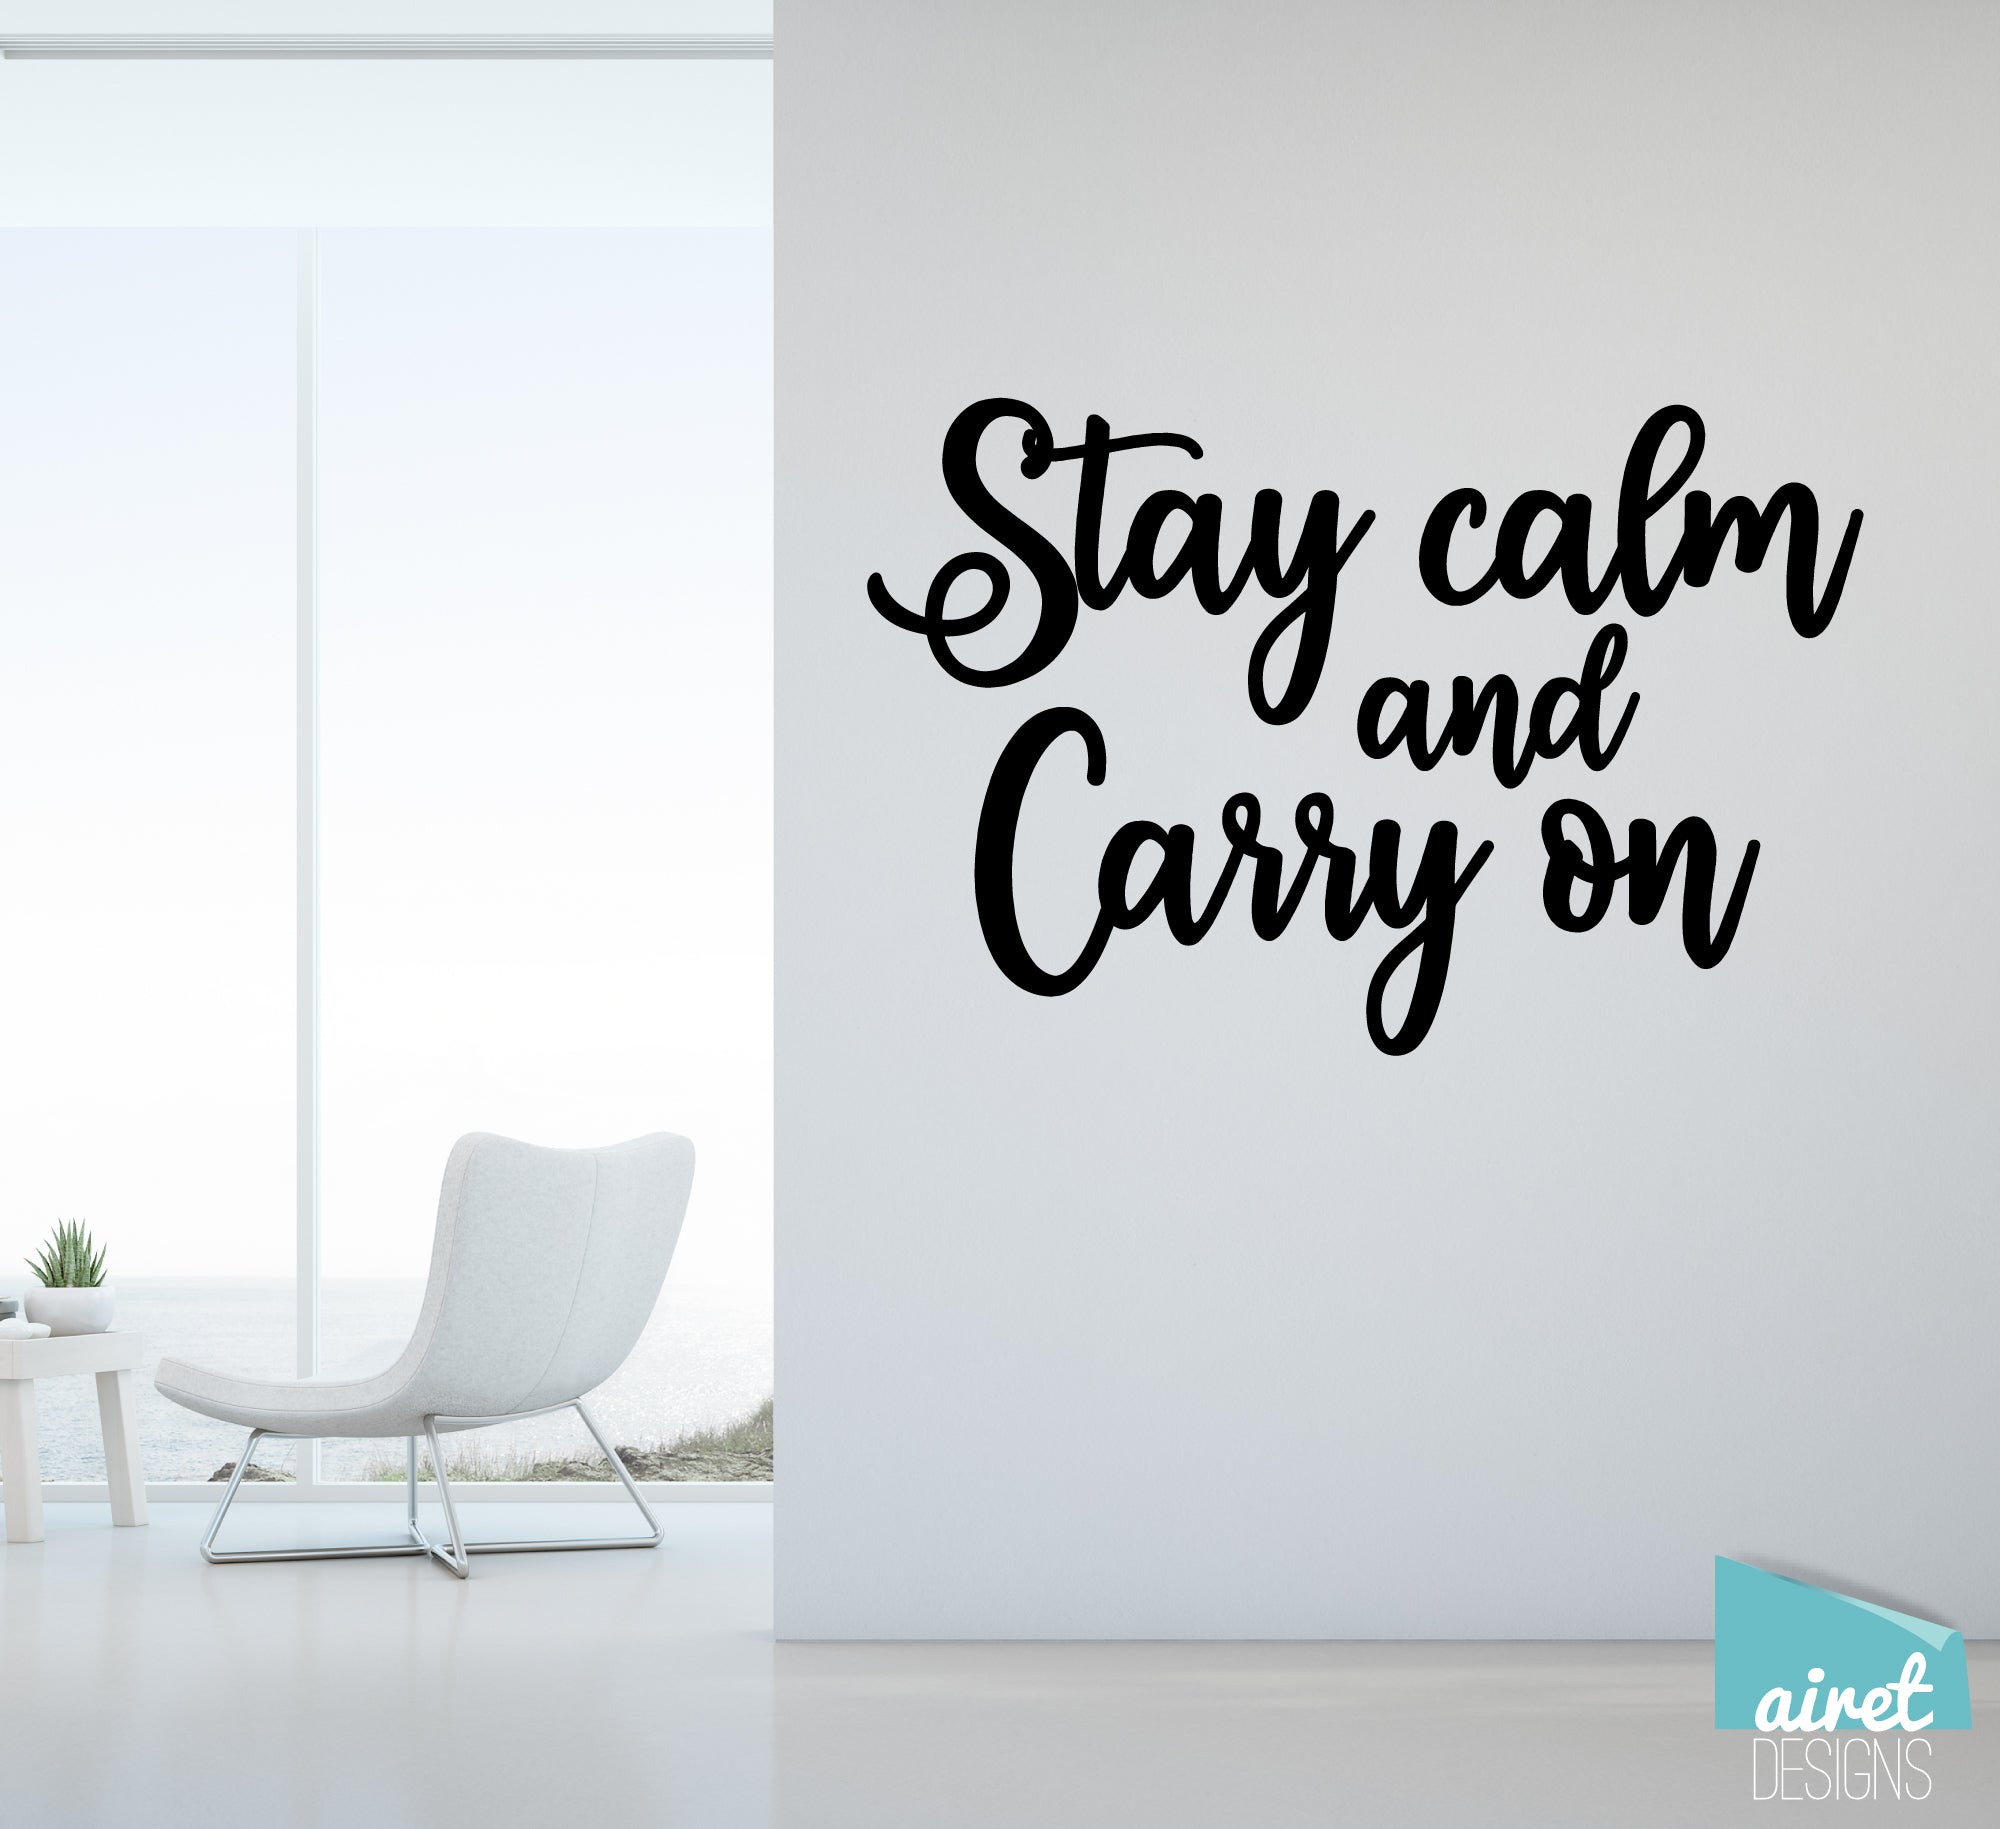 Stay Calm and Carry On - Vinyl Decal Inspirational Wall Decor Sticker Sign